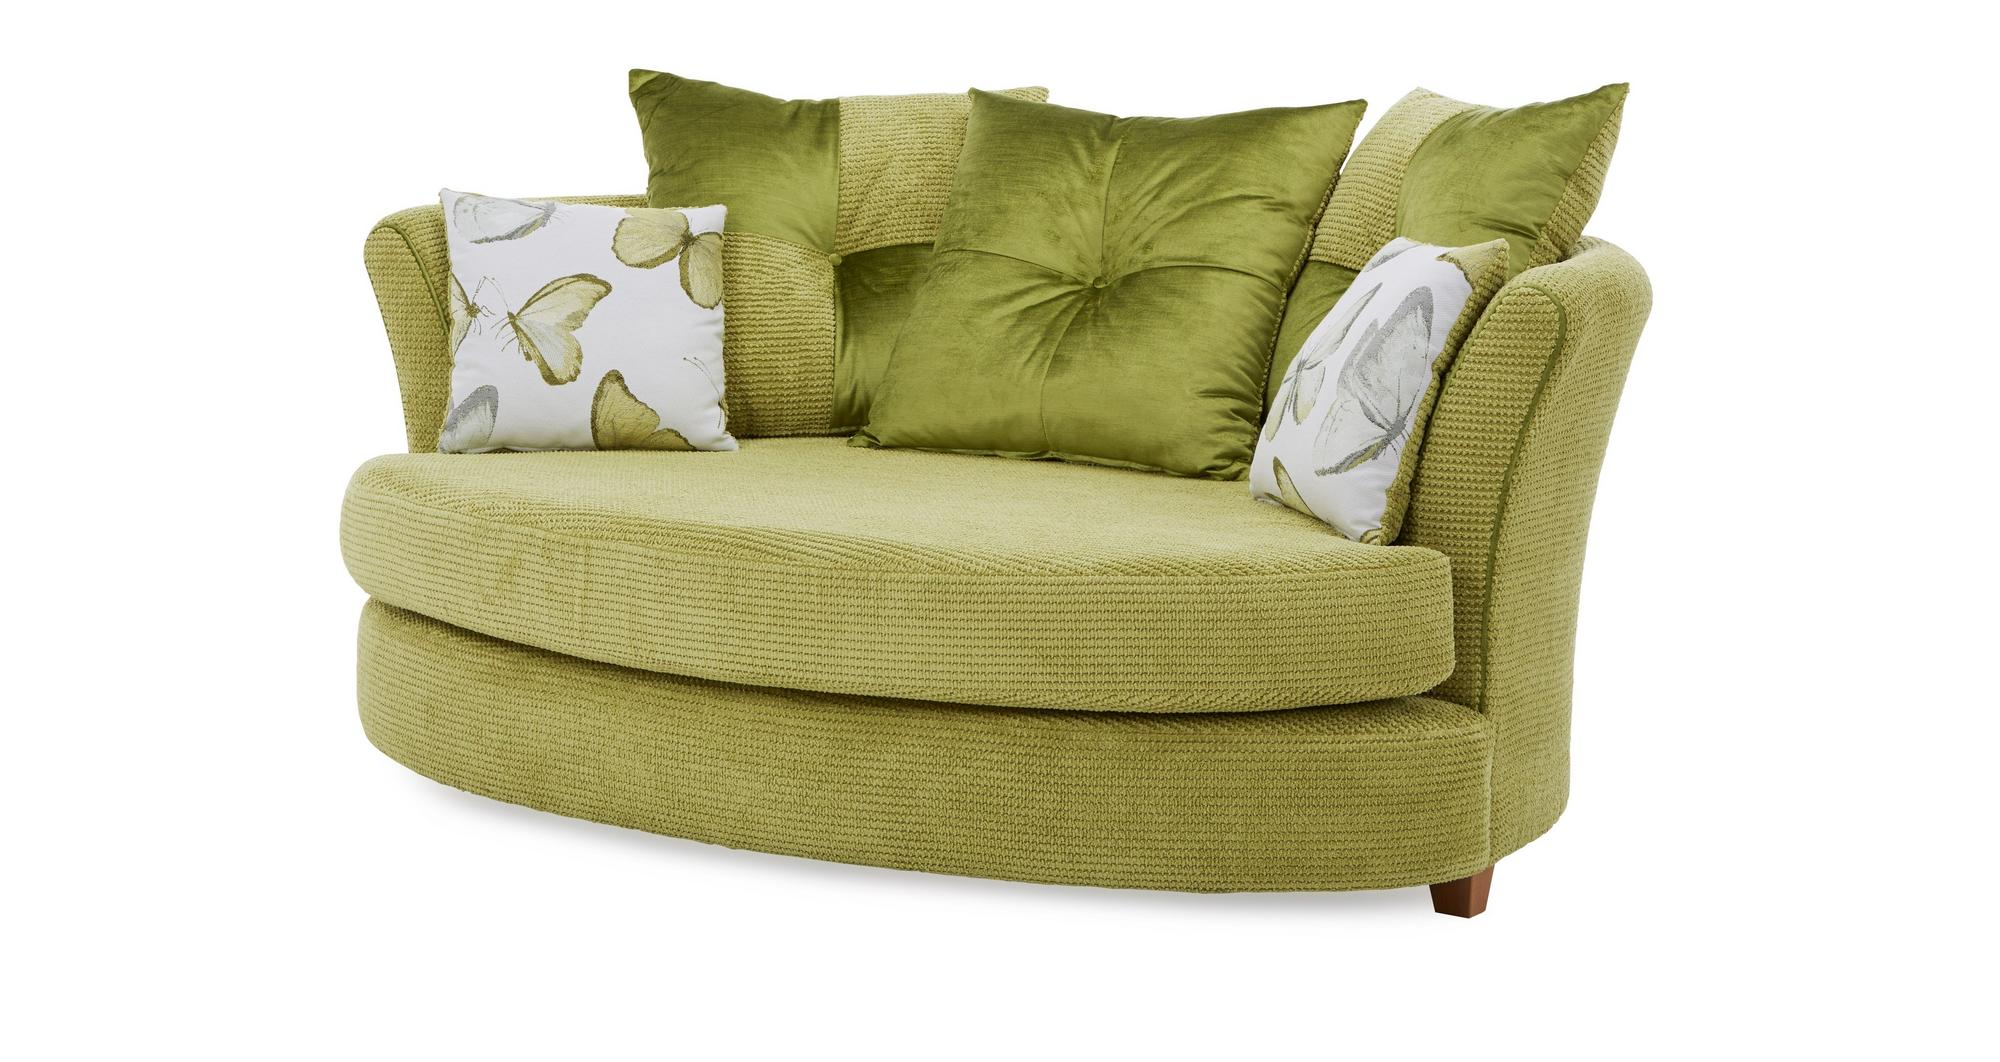 Dfs Alegra Lime Green Fabric Cuddler Sofa Amp Patterned